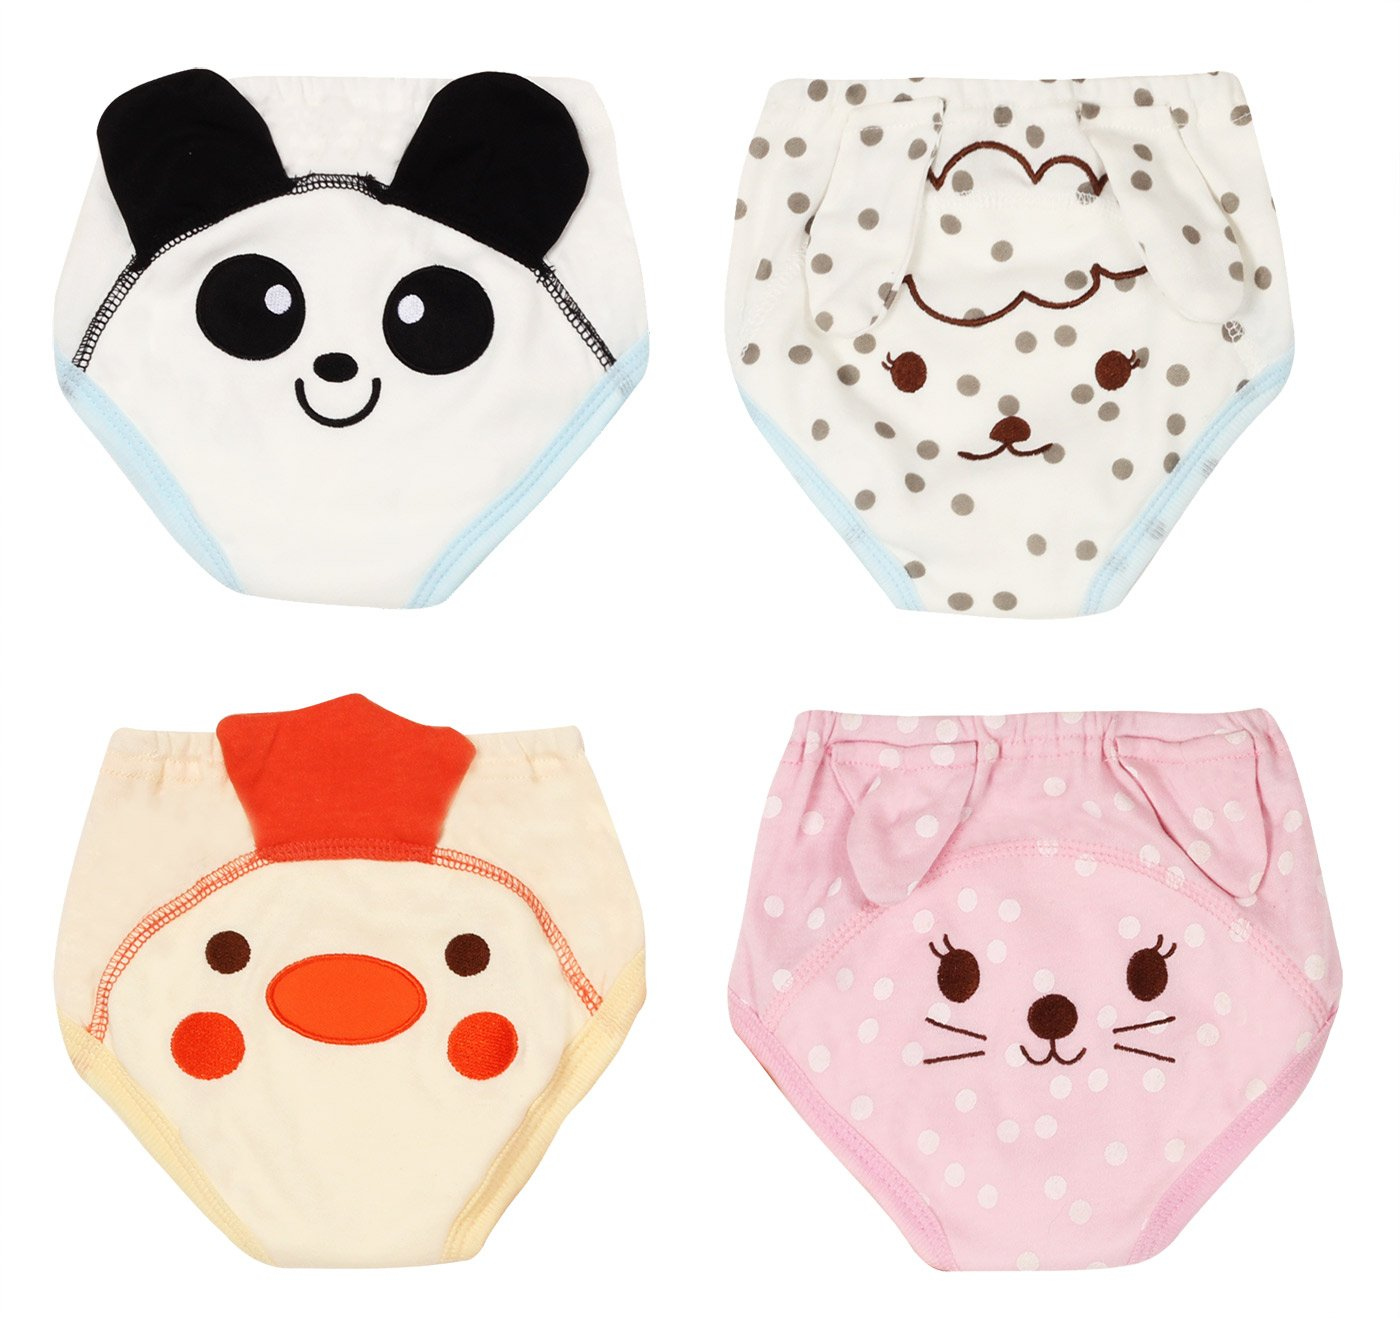 Potty Training Pants for Baby Boys Girls Soft Cotton Toddler Nappy Diaper Underwear Cat Panda Sheep Chick Size 80 Pack of 4